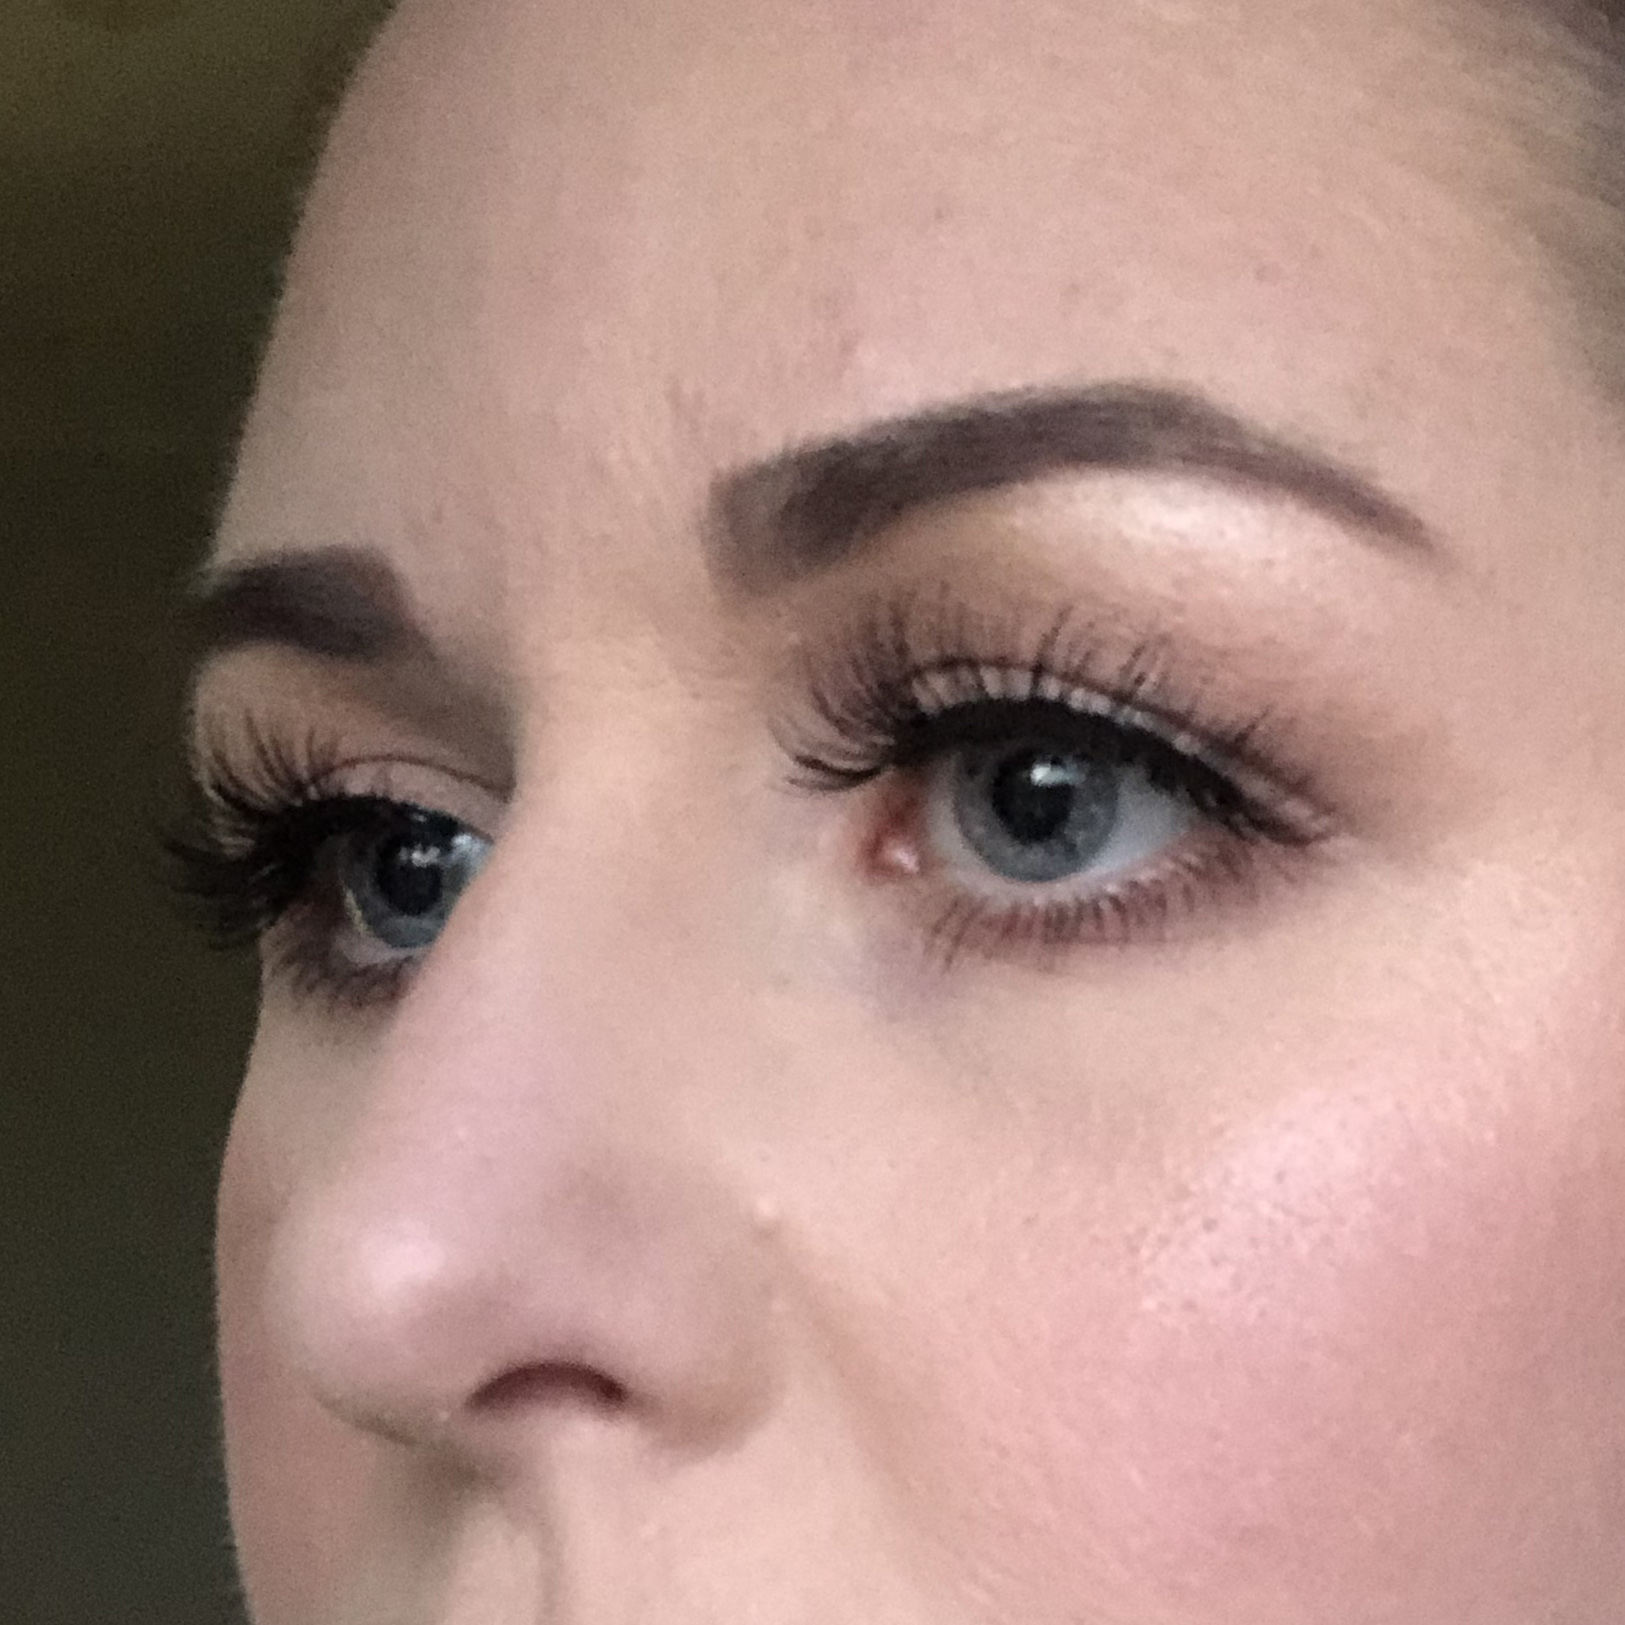 Eylure Pre Glued Lashes Review